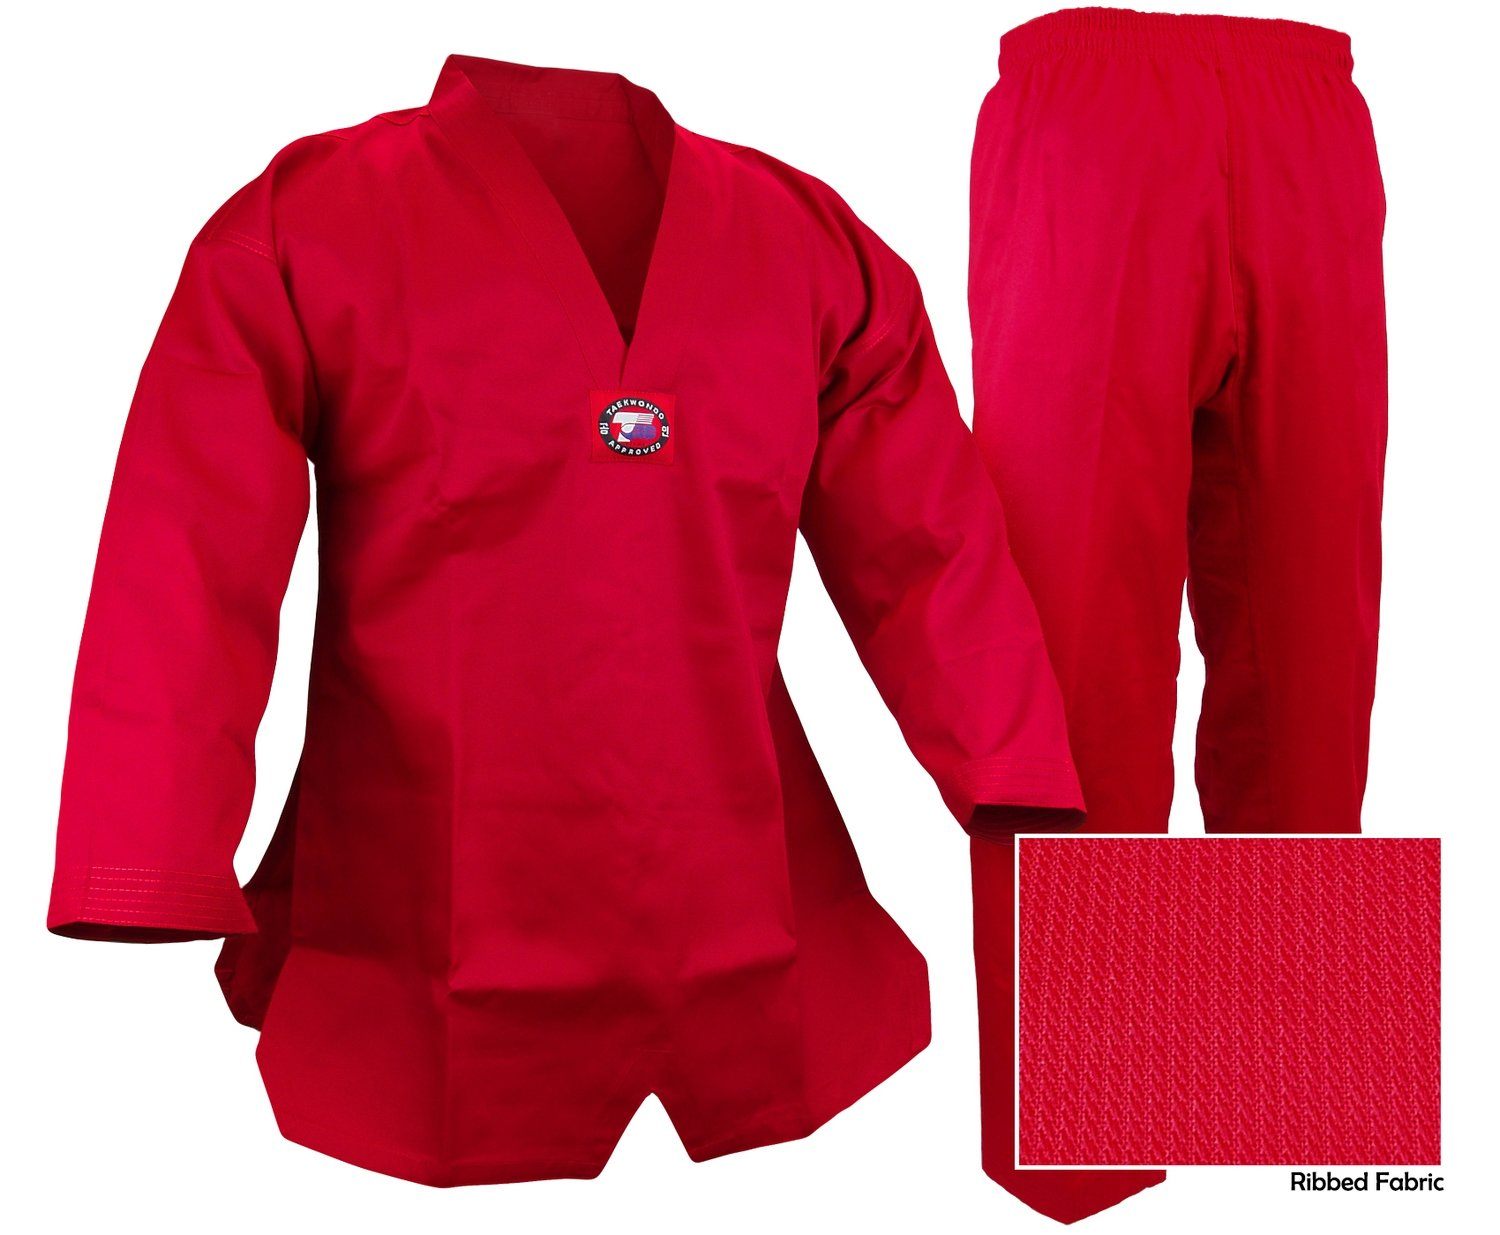 Taekwondo Uniform, Ribbed, Red